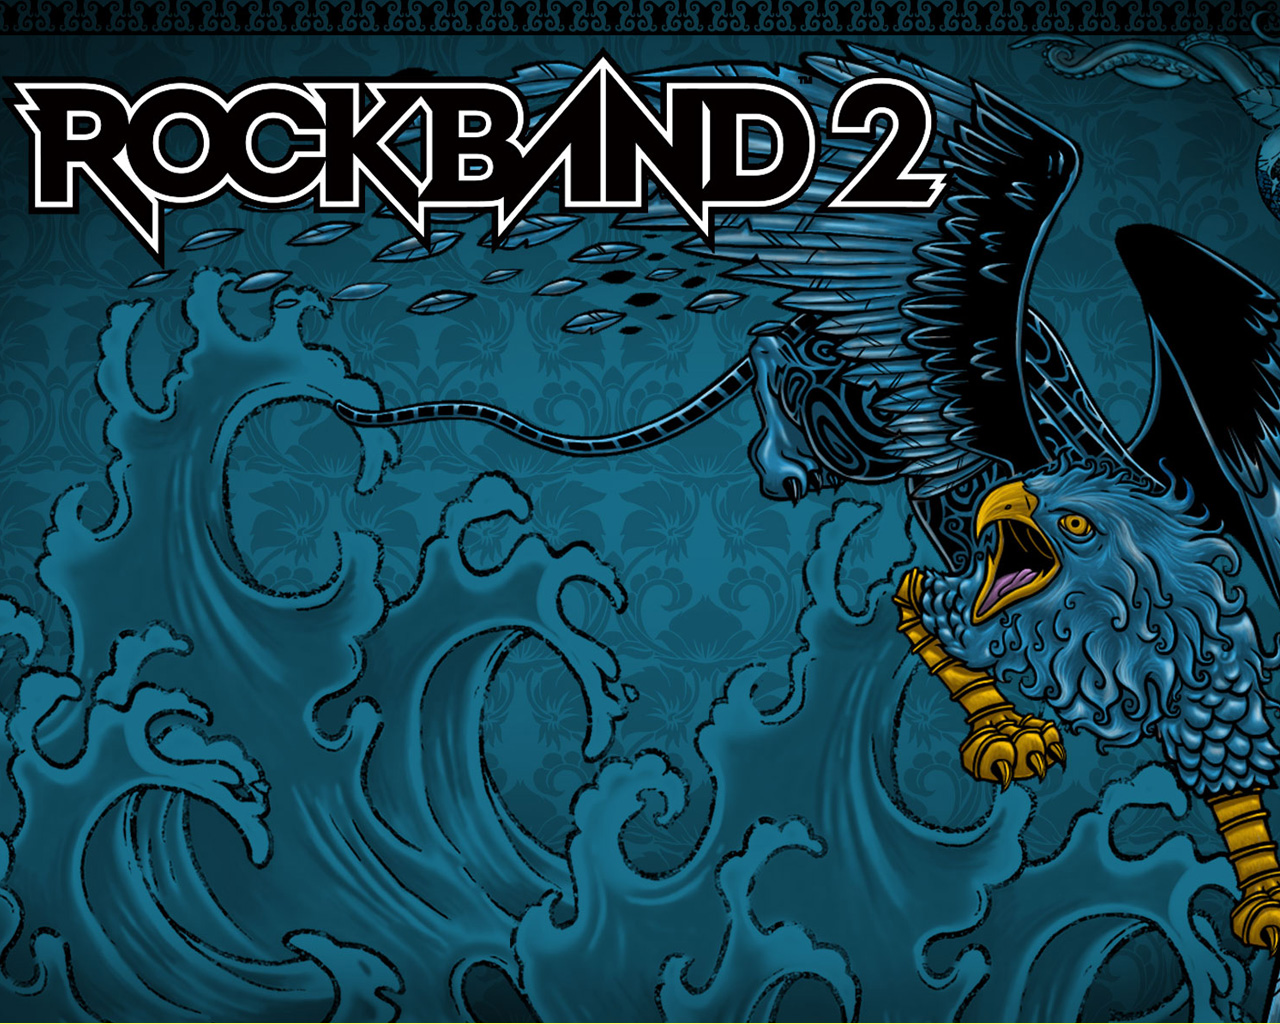 Rock Band 2 Wallpaper in 1280x1024